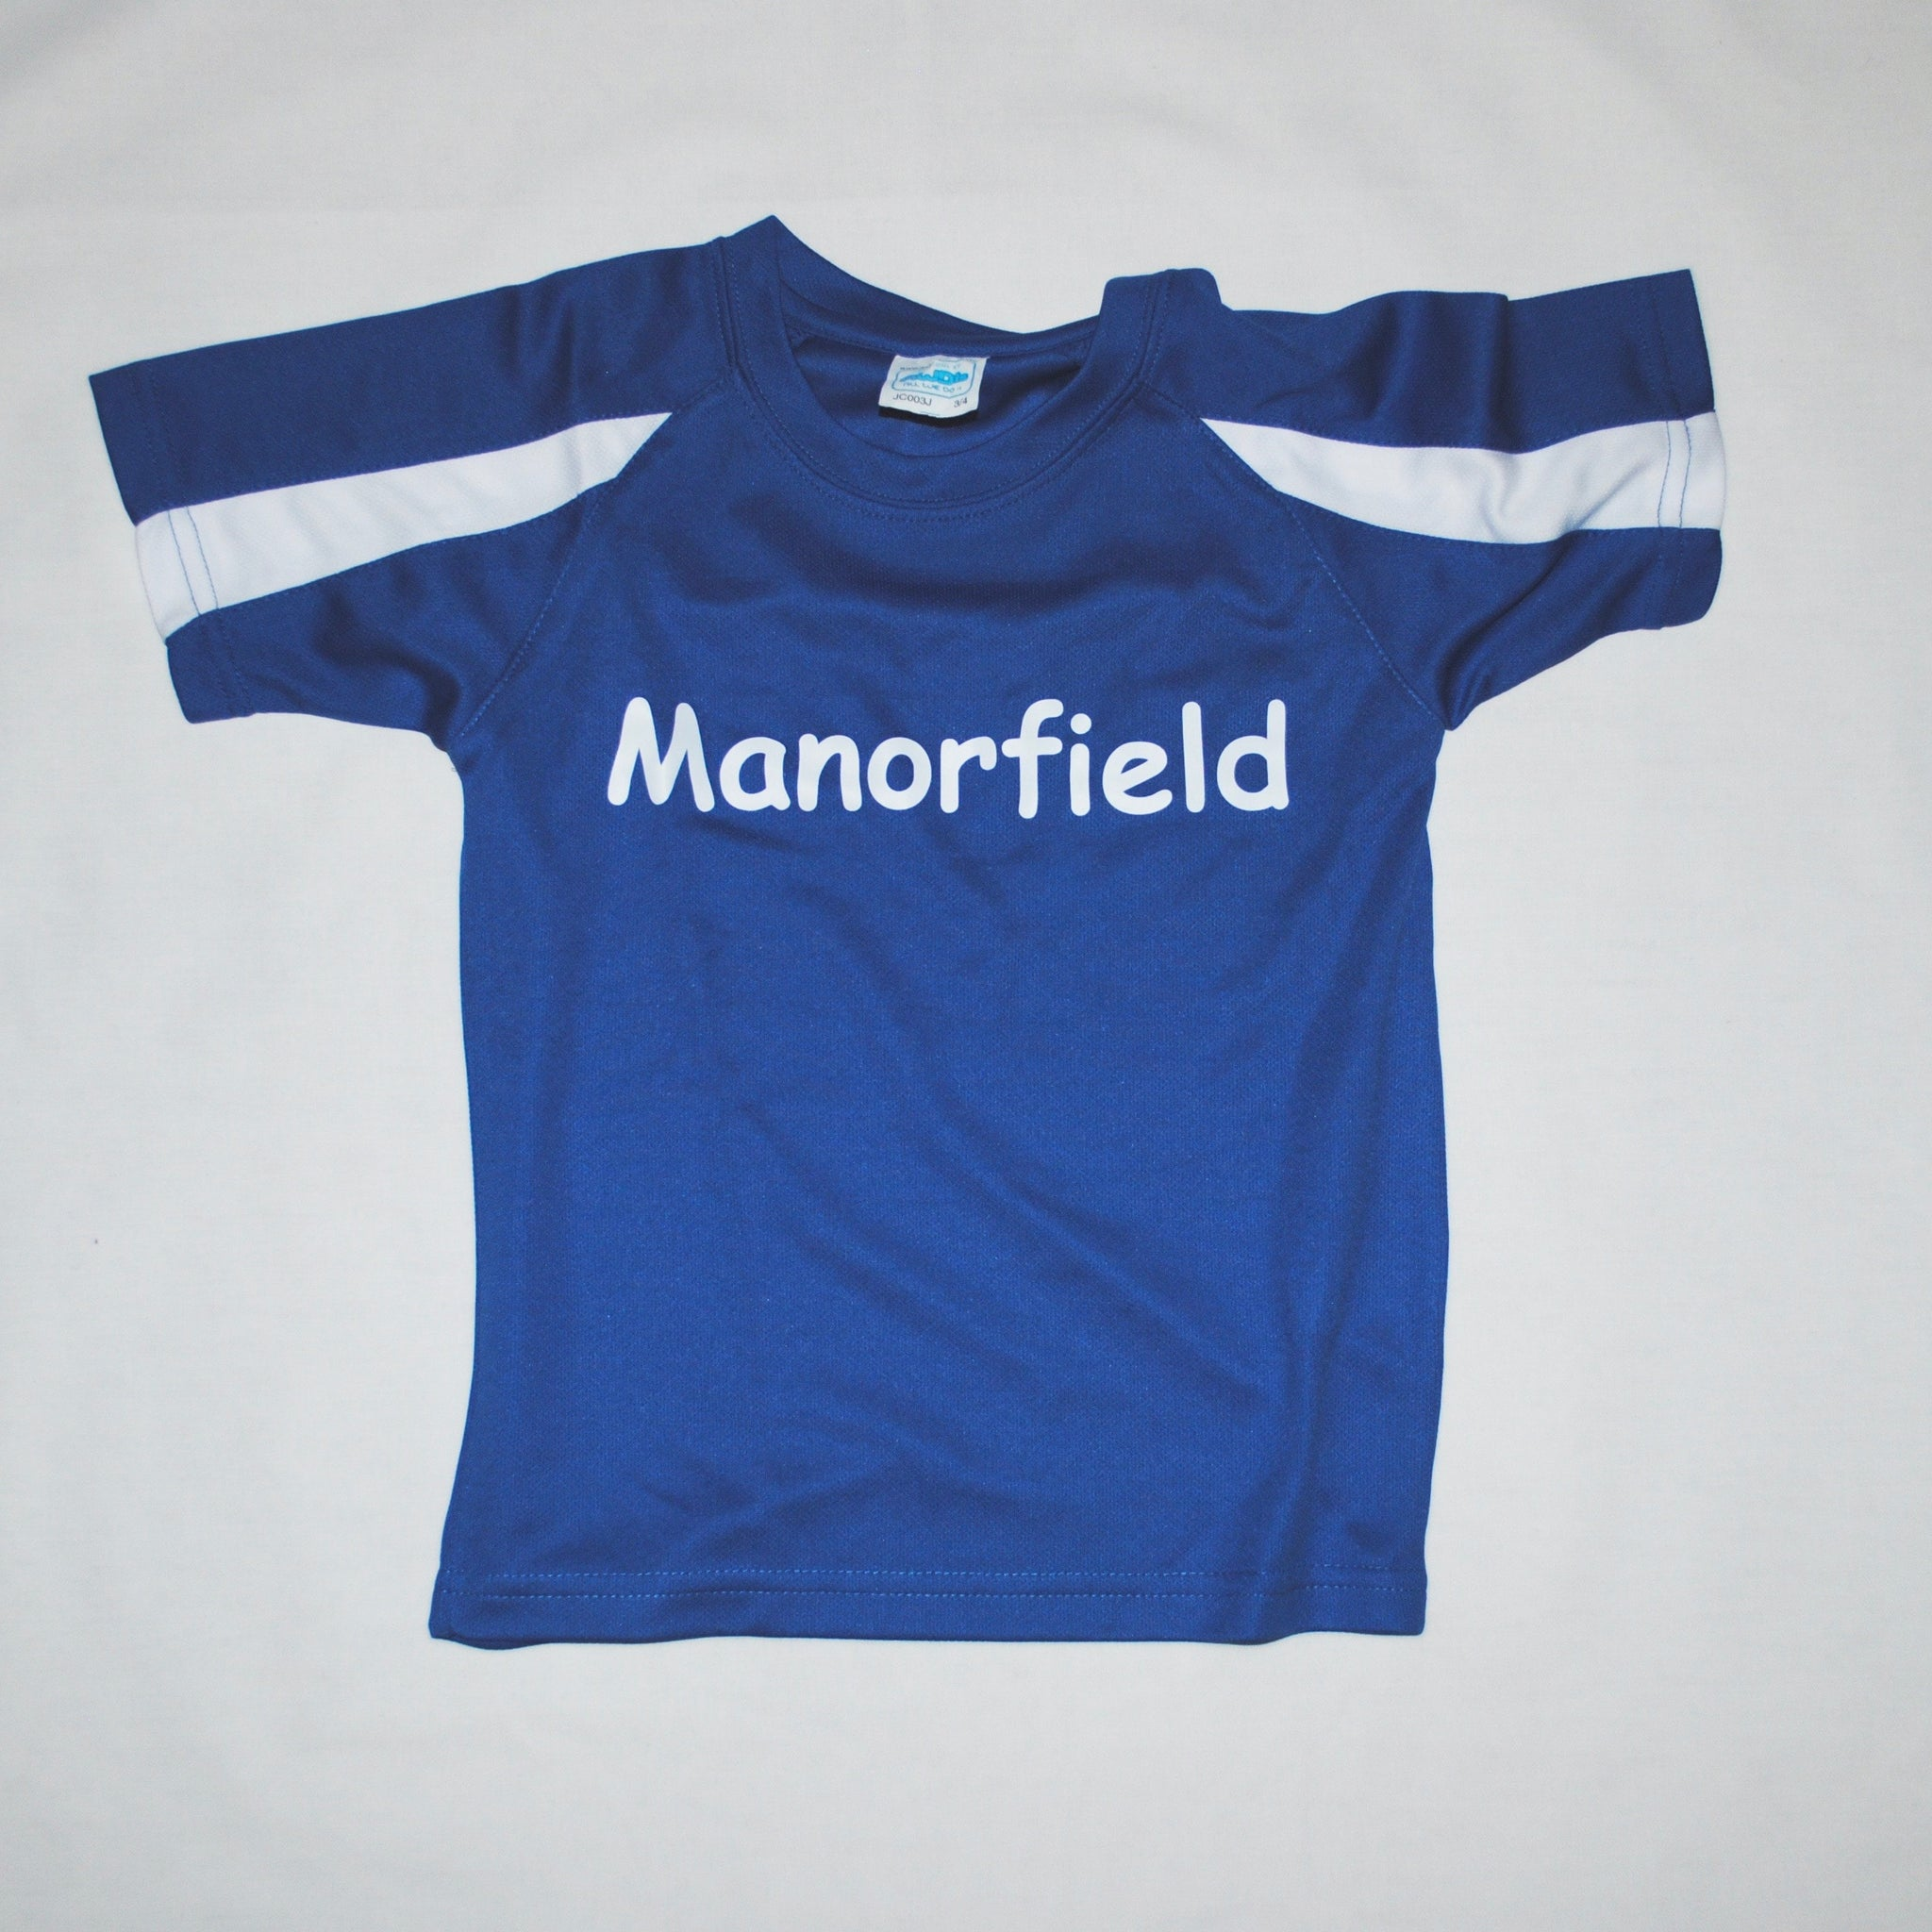 Manorfield PE T Shirt - Swifts Uniforms